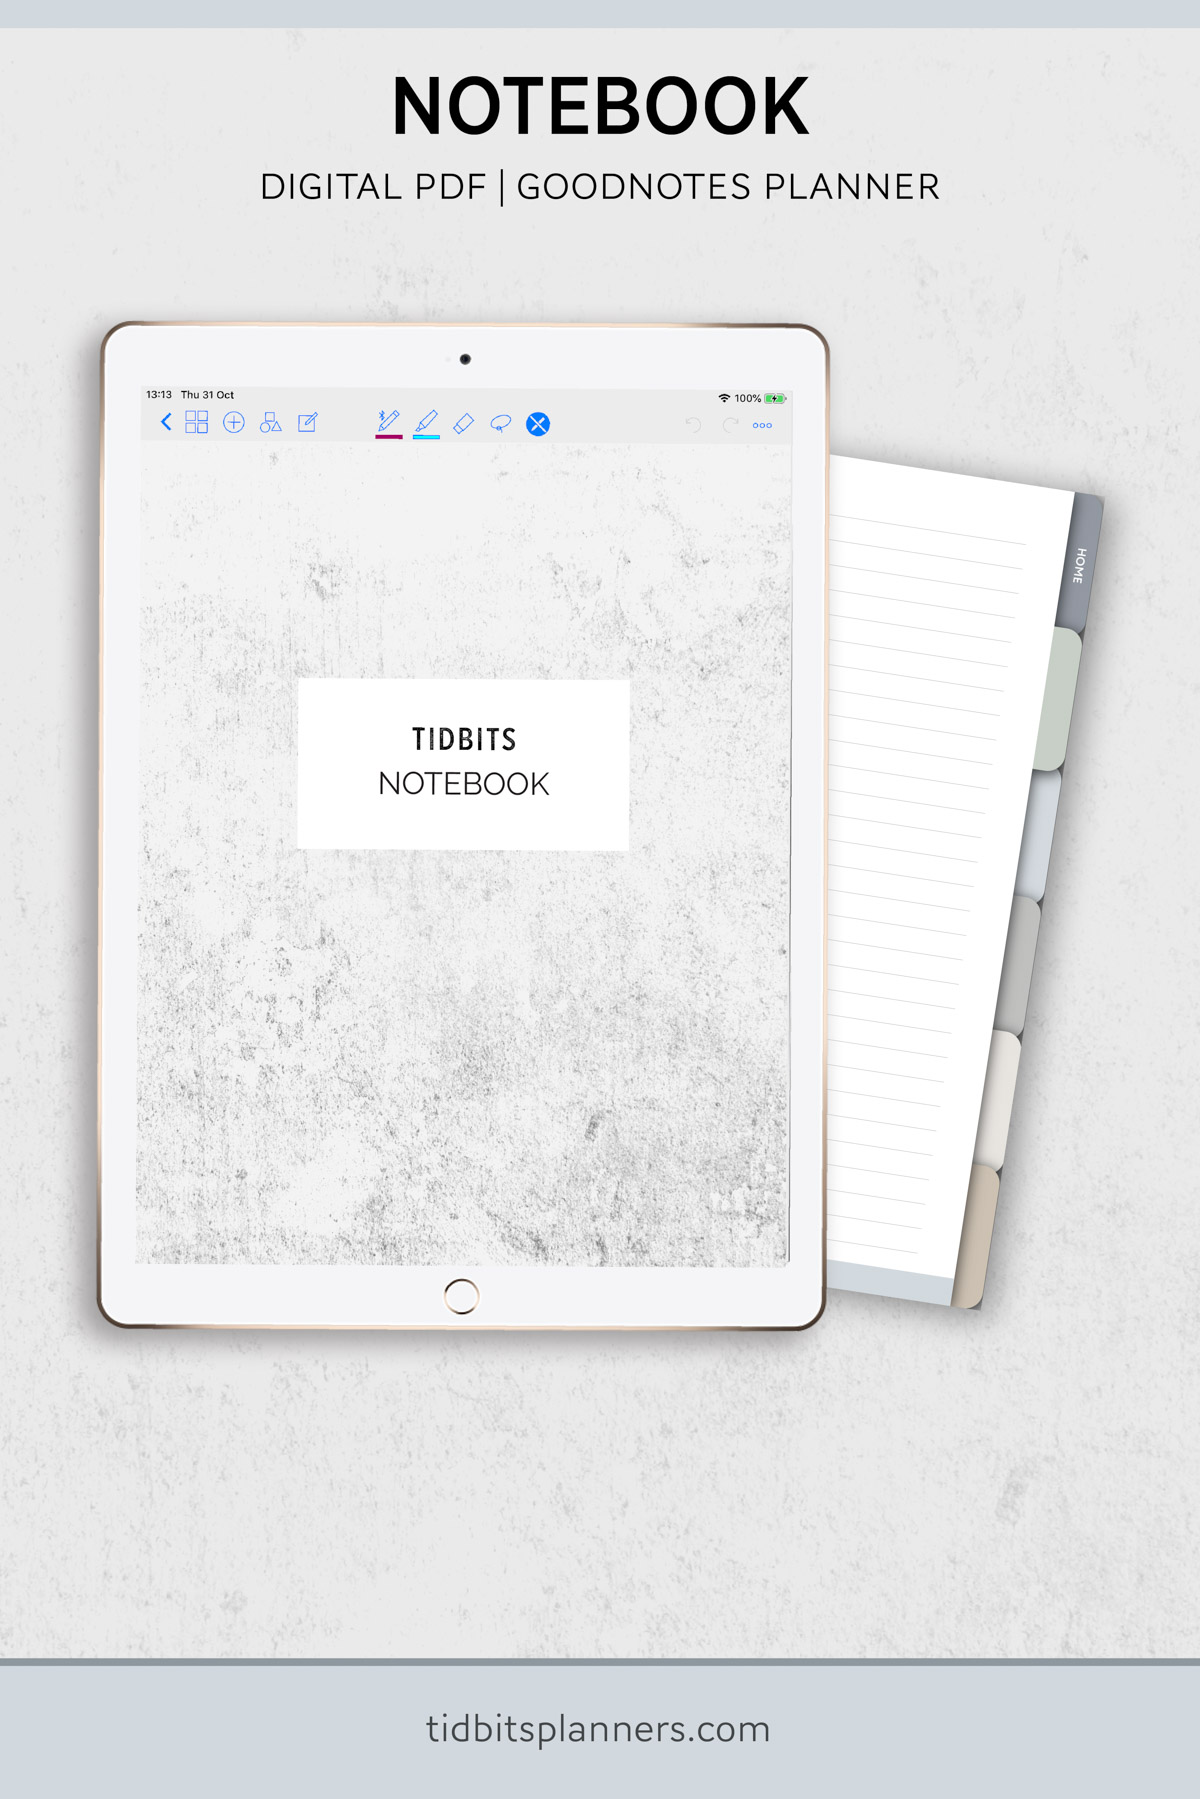 pages in the digital TIDBITS Notebook.